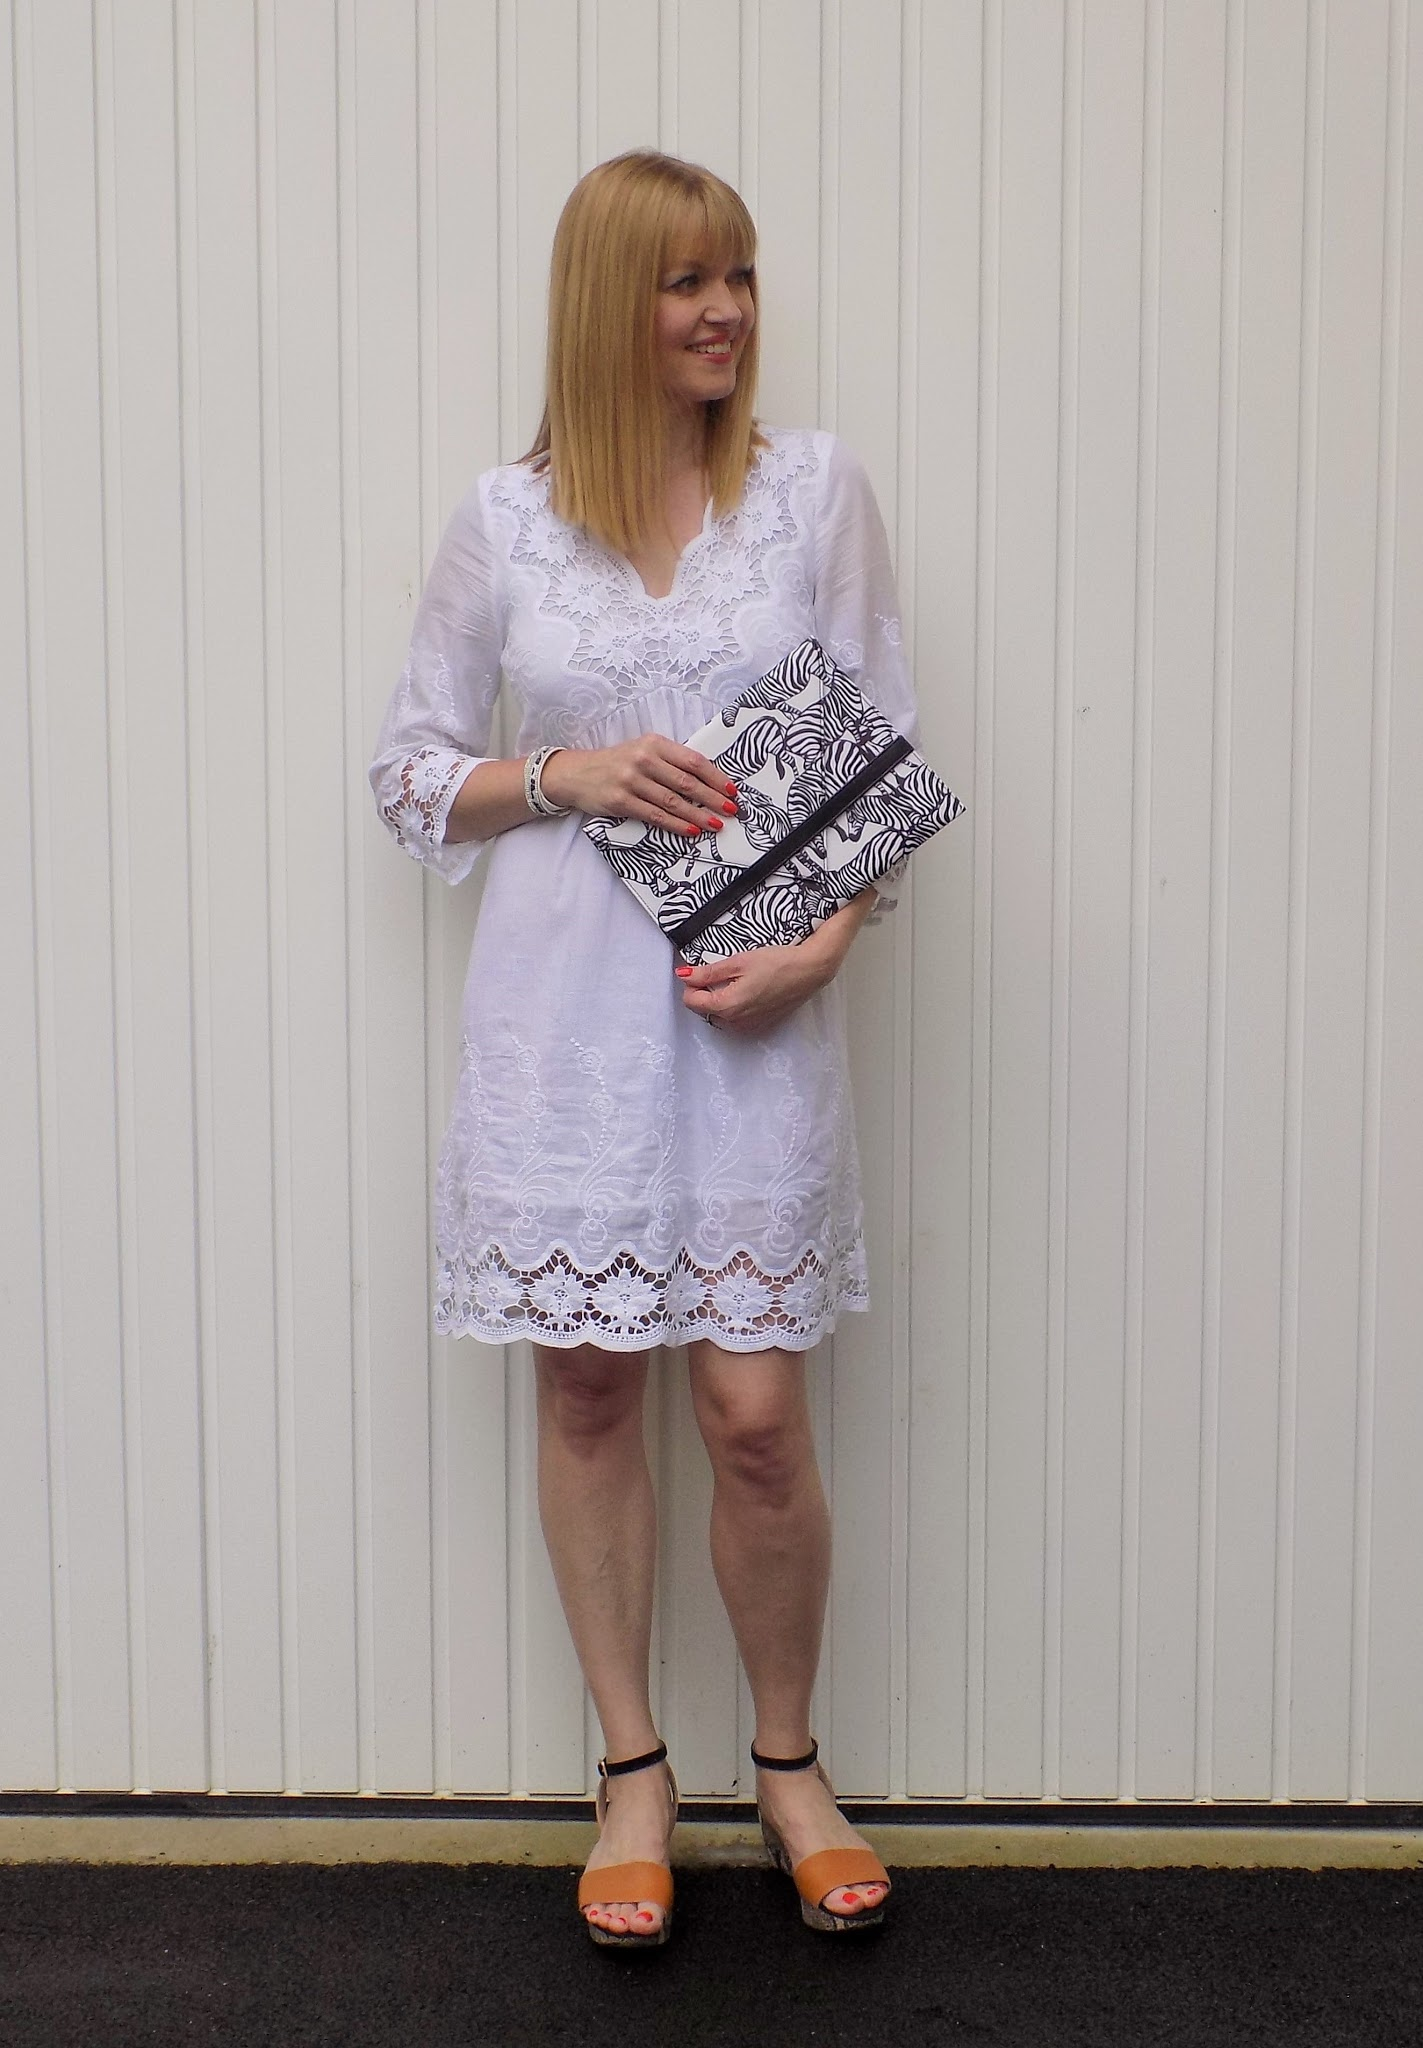 White lace dress, zebra print clutch bag, leopard print wrap bracelet and wedge sandals